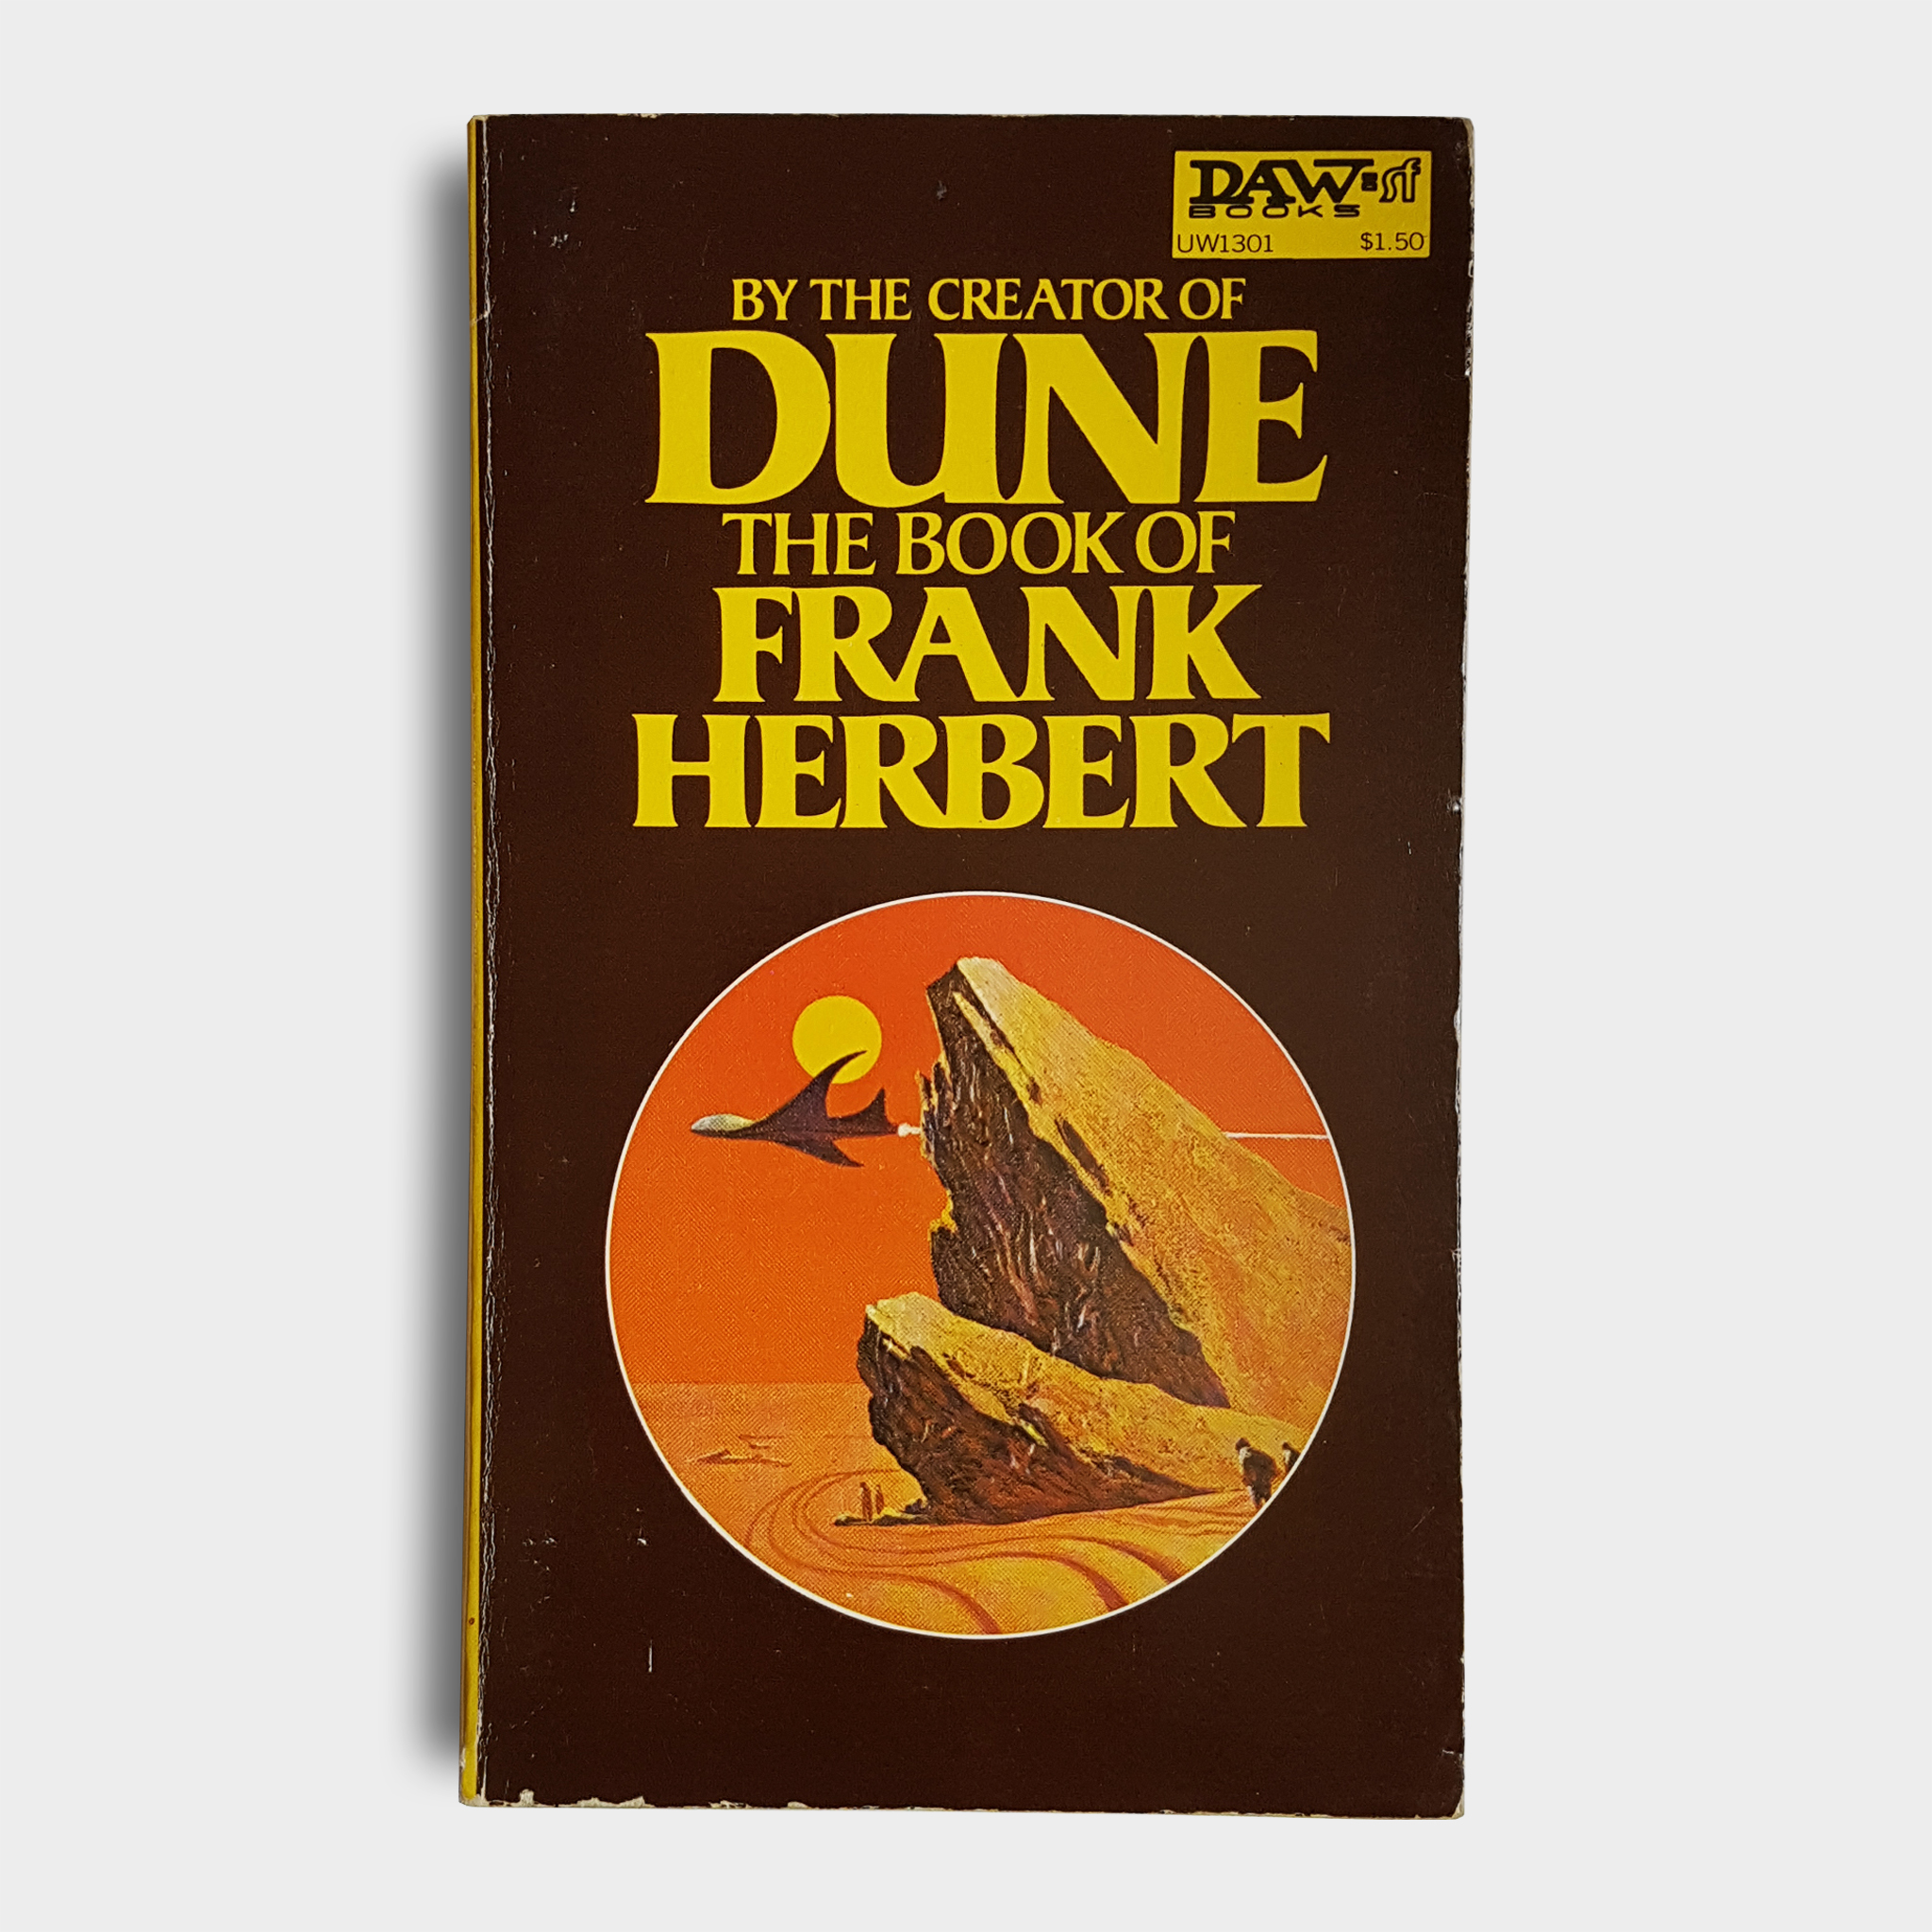 Frank Herbert - The Book of Frank Herbert